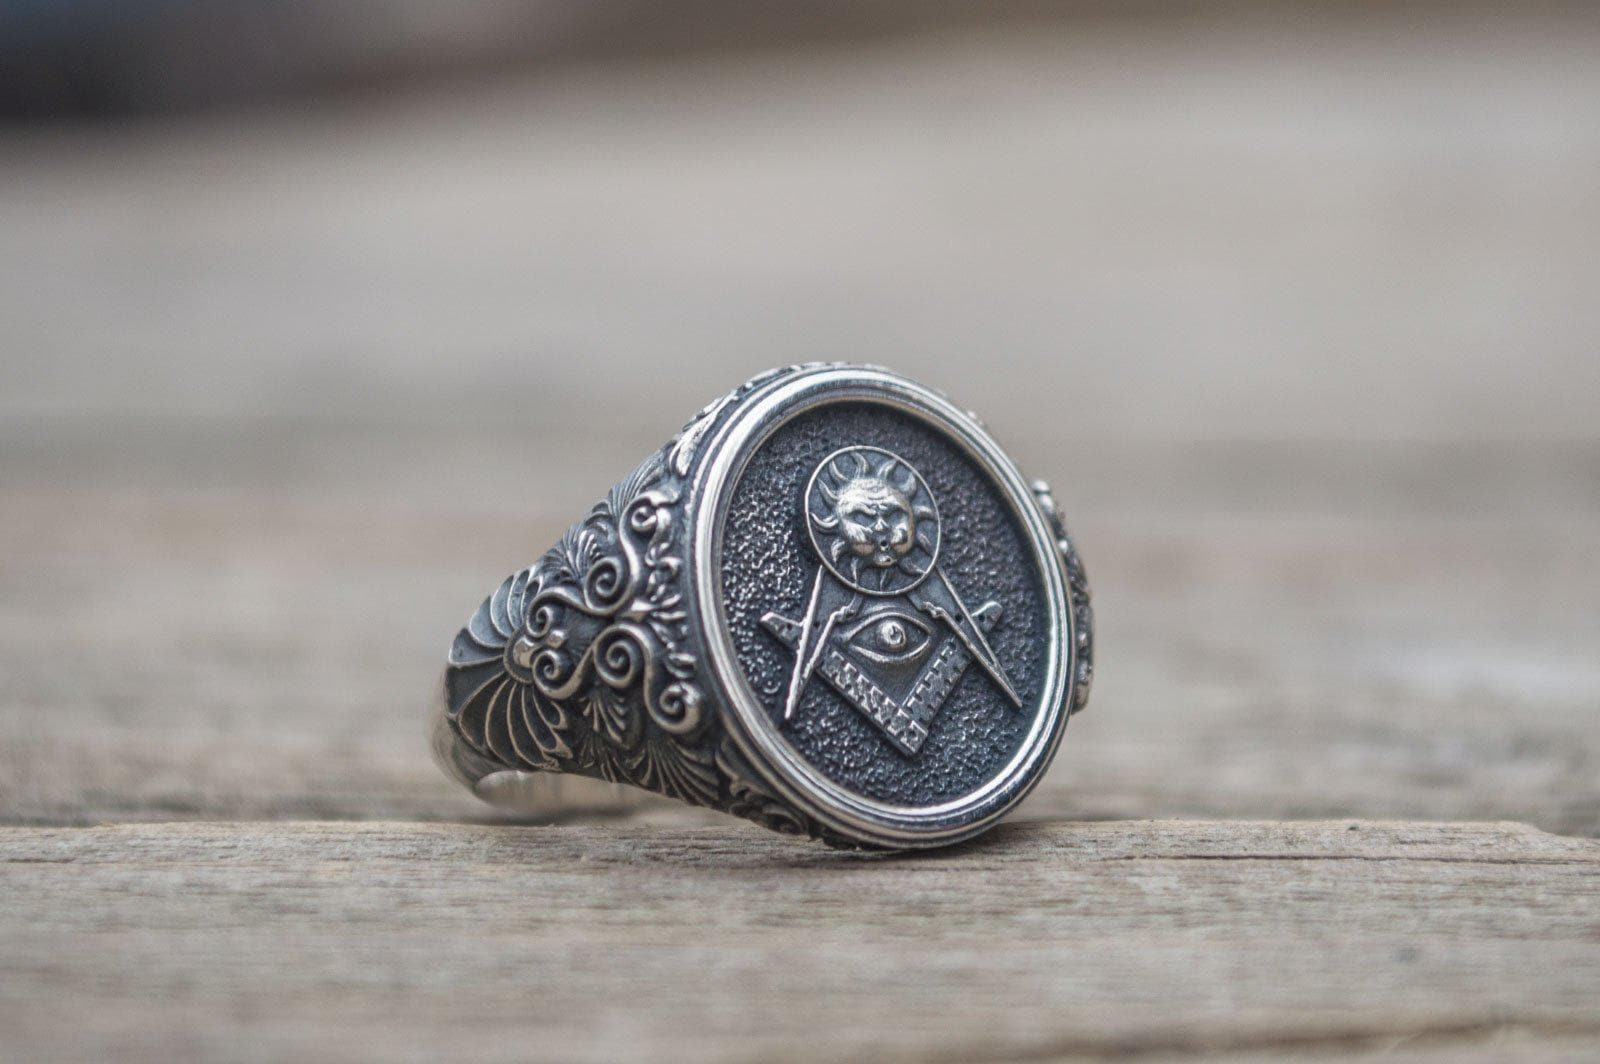 Rings Masonic Compass All Seeing Eye with Sun Sterling Silver Ring Ancient Treasures Ancientreasures Viking Odin Thor Mjolnir Celtic Ancient Egypt Norse Norse Mythology